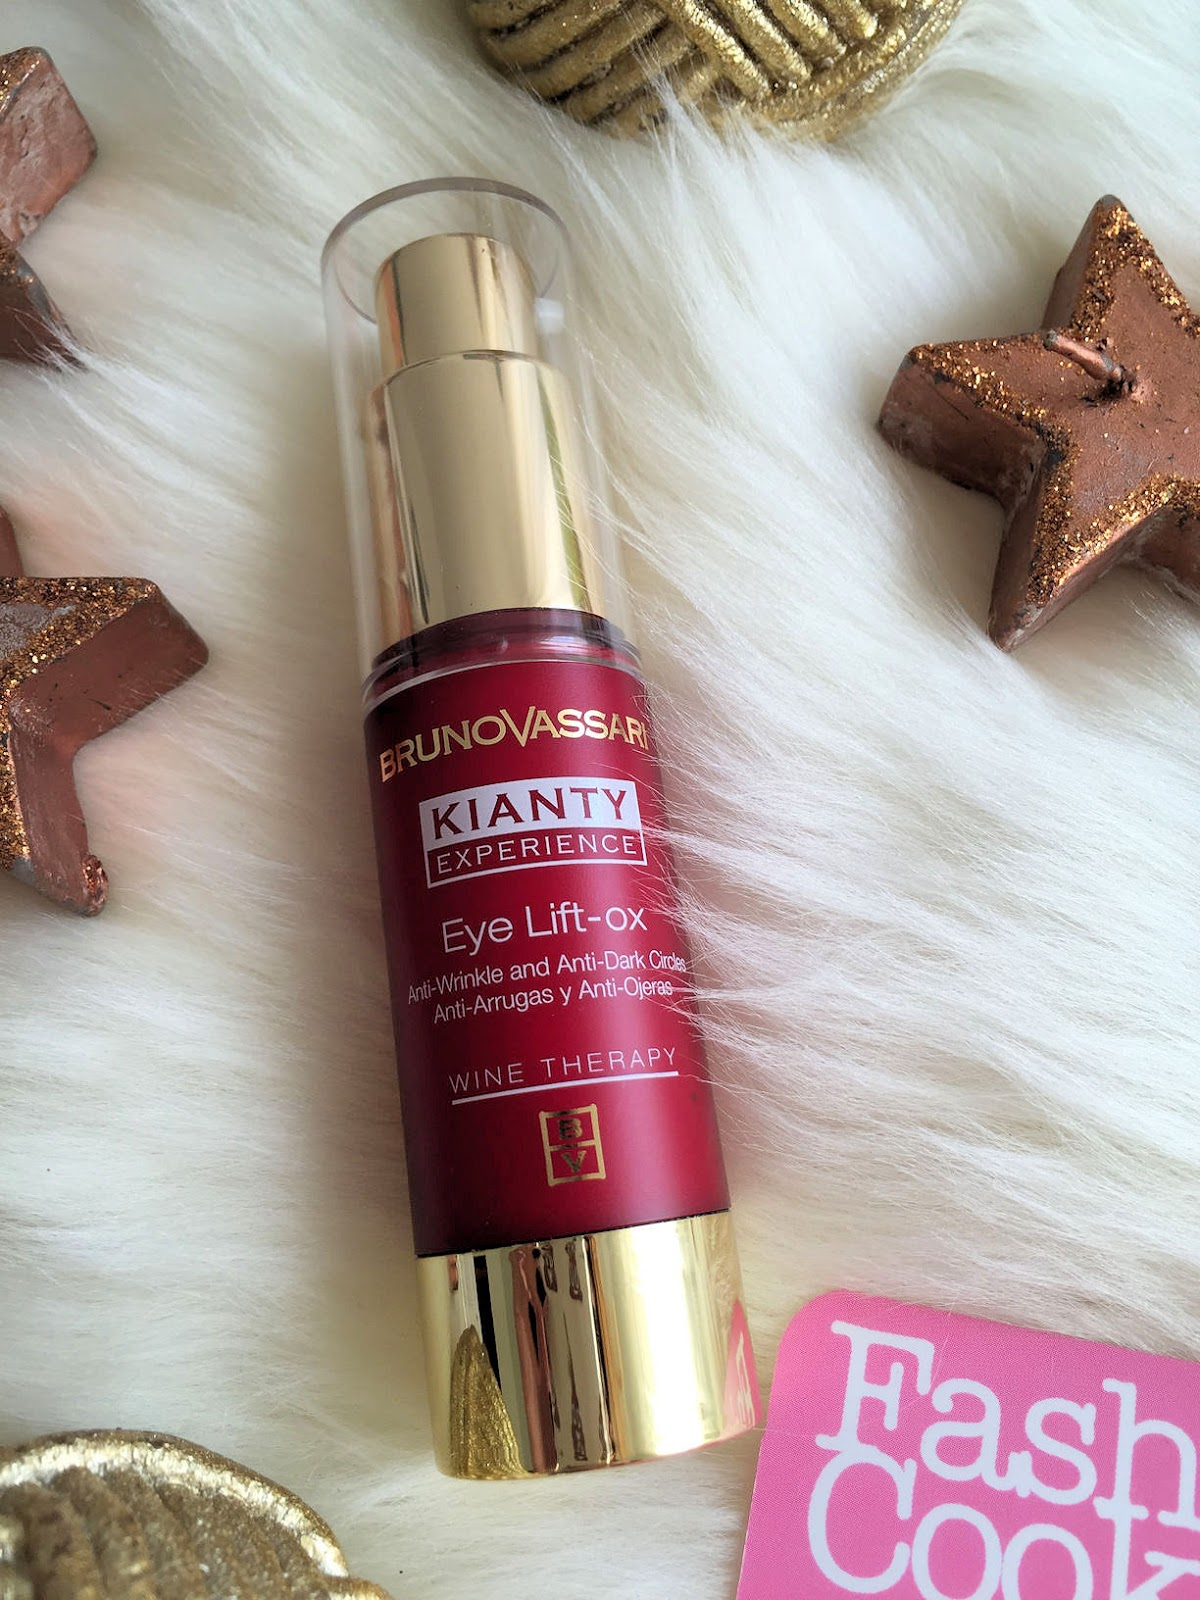 Bruno Vassari Kianty Experience Eye Lift-Ox on Fashion and Cookies beauty blogger, beauty blog review